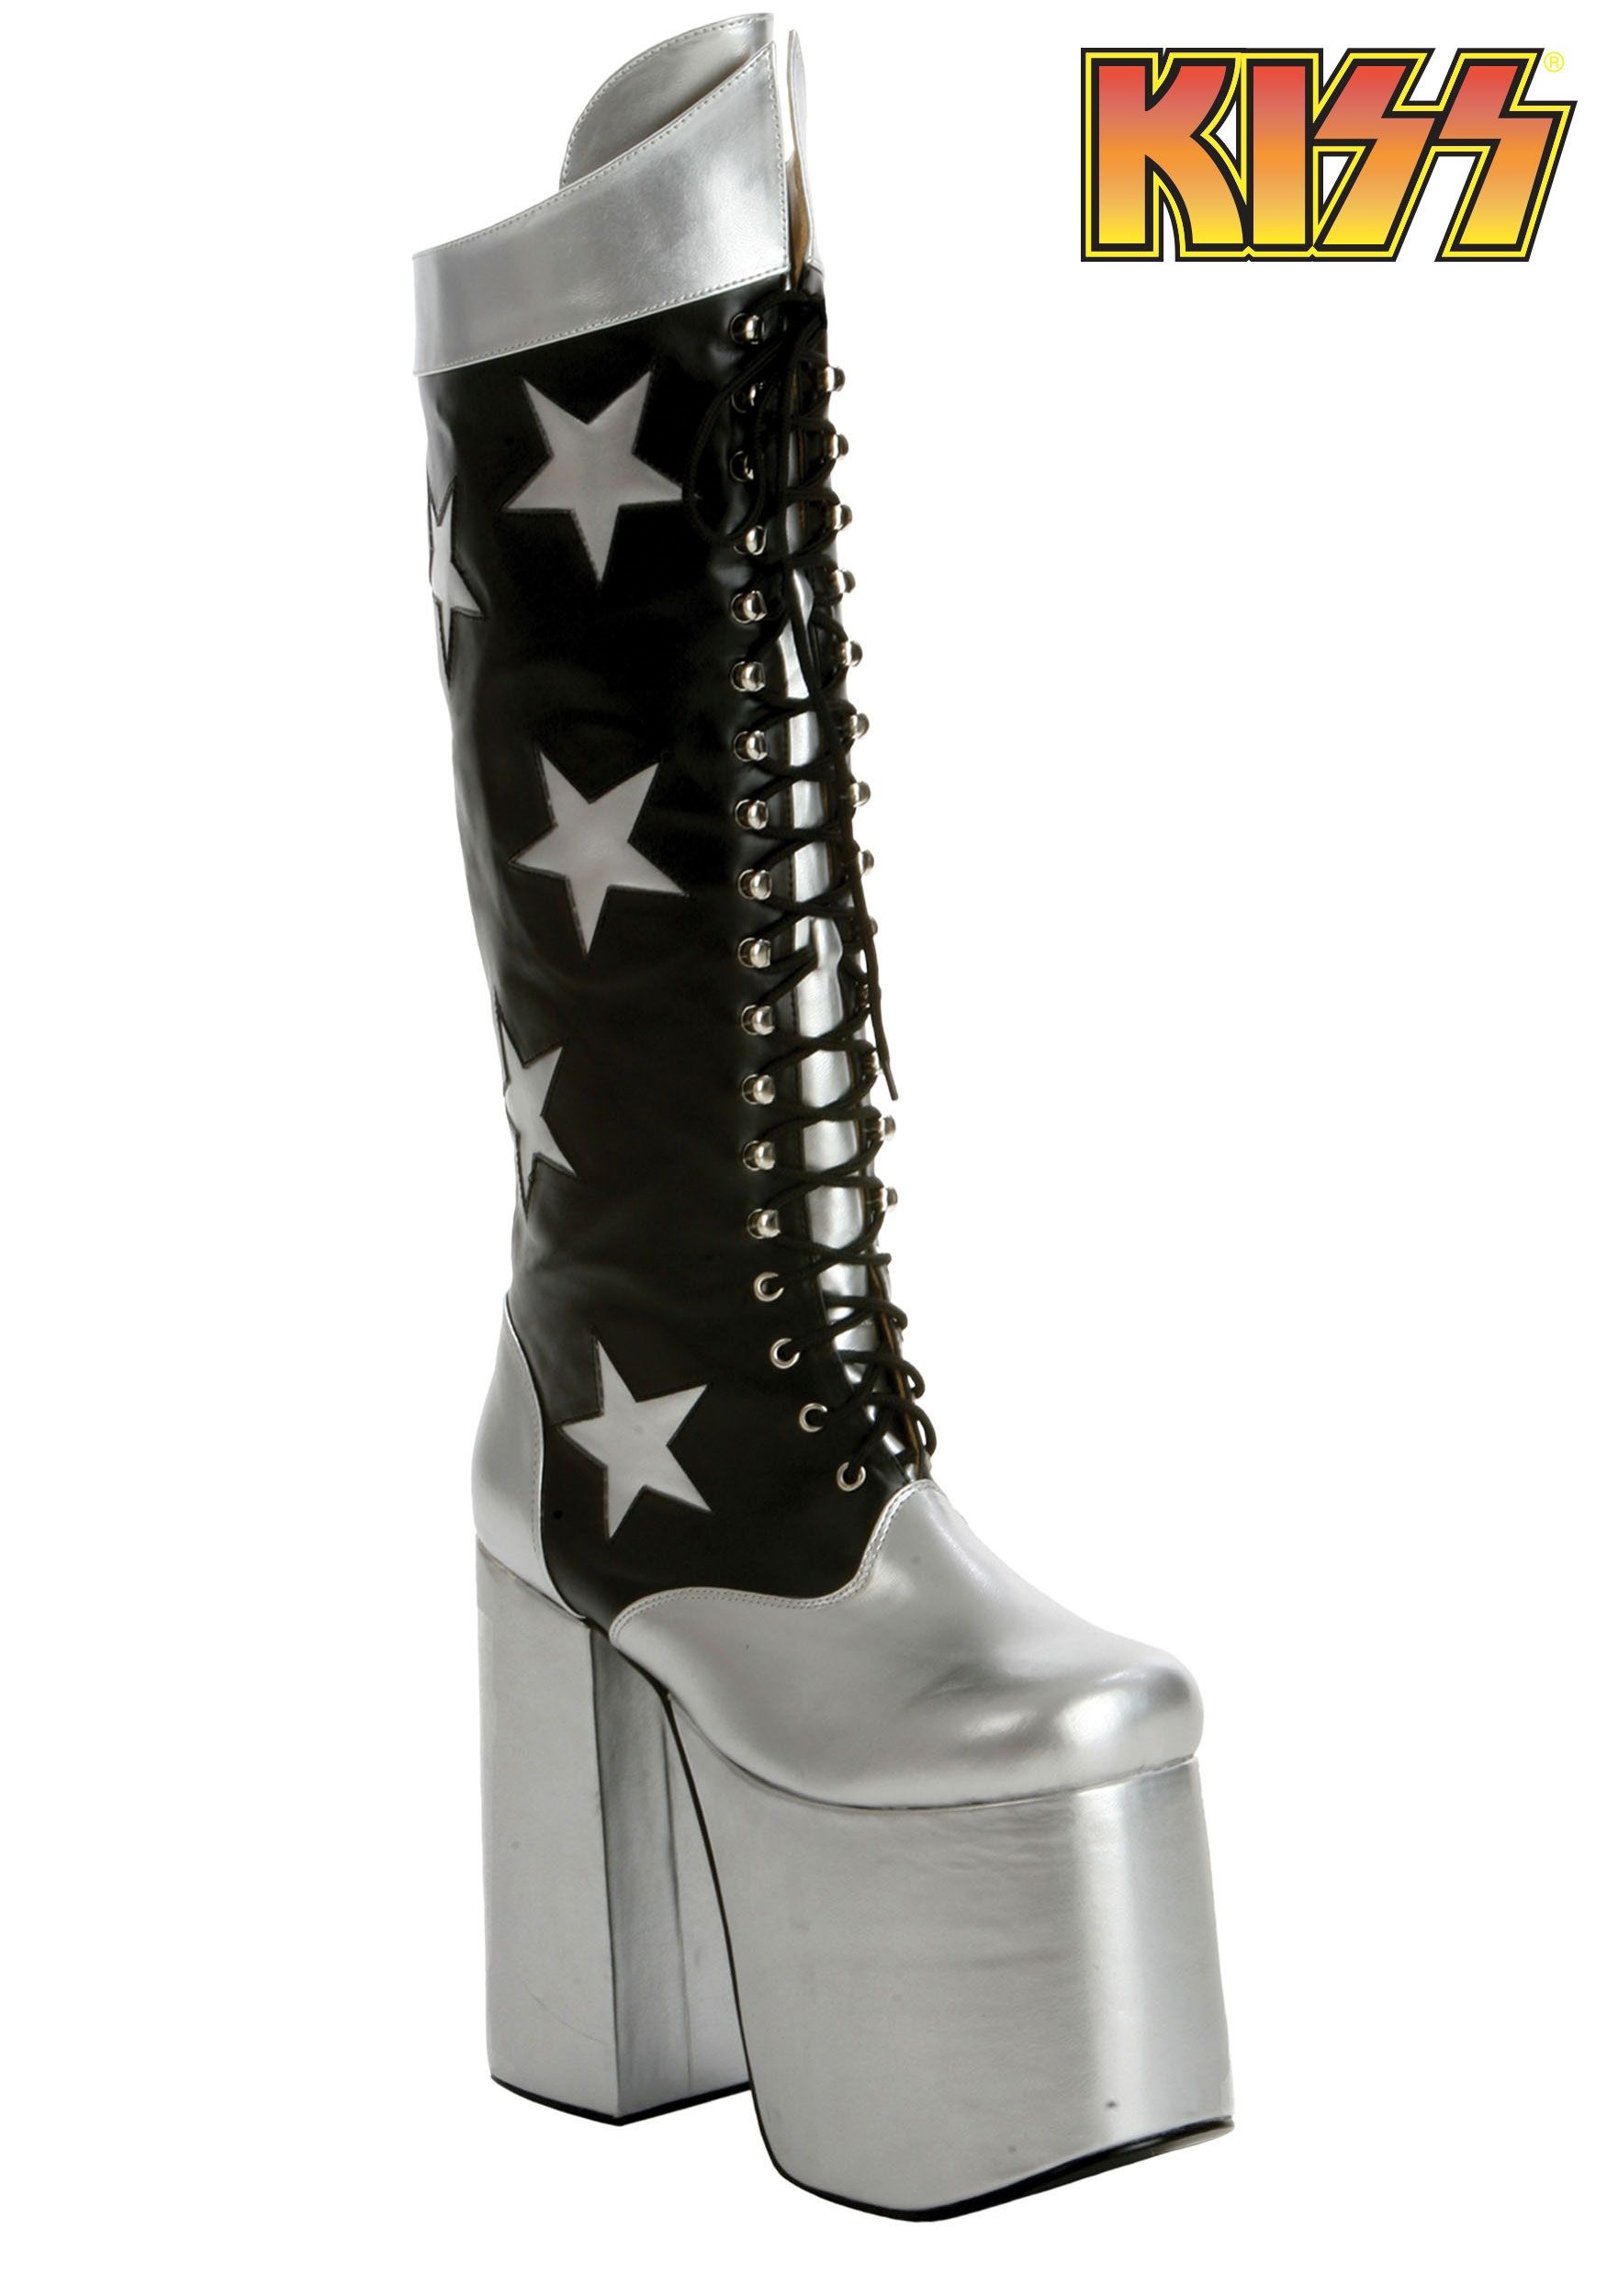 KISS Starchild Boots | Kiss boots, Kiss and Kiss band